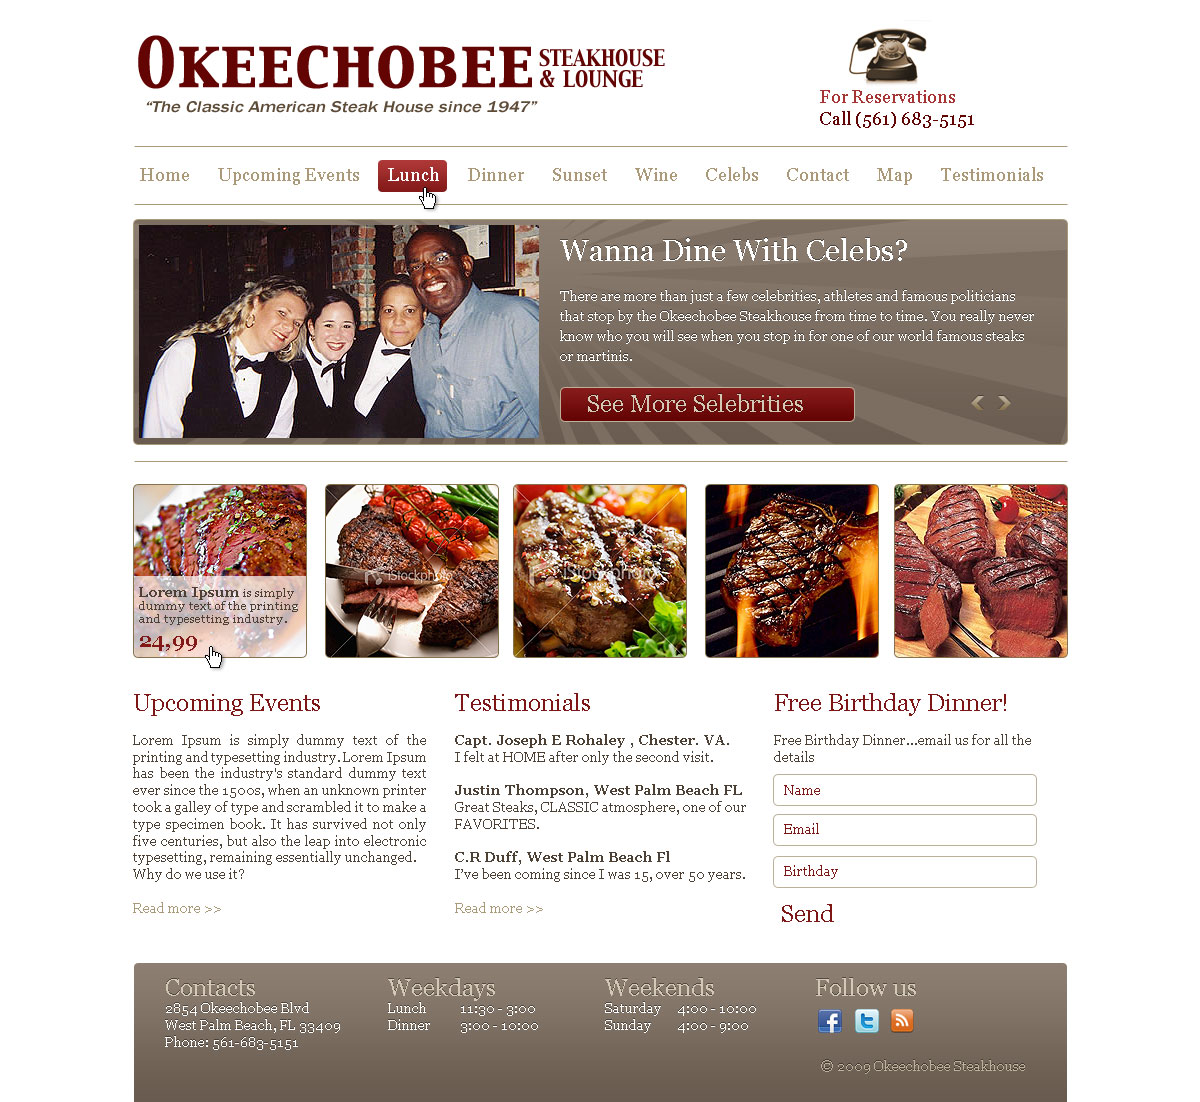 Okeechobee-Steakhouse